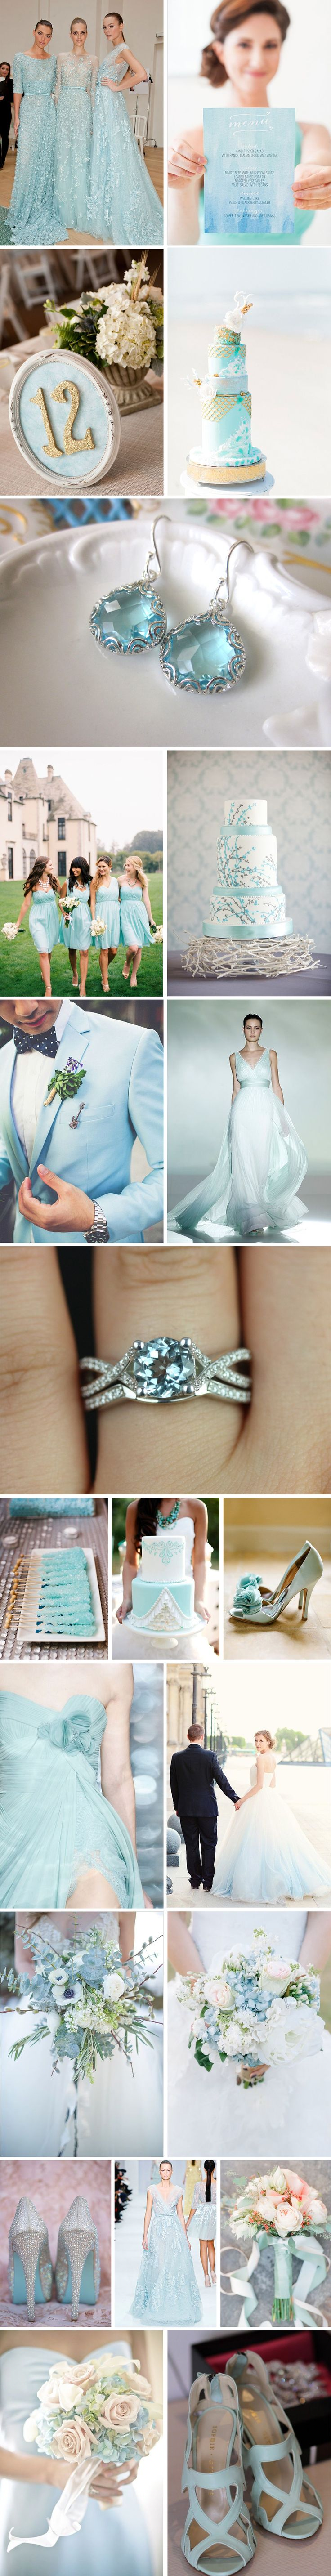 aquamarine wedding color inspiration #FeltNoir #Aquamarine #MarchBirthstone